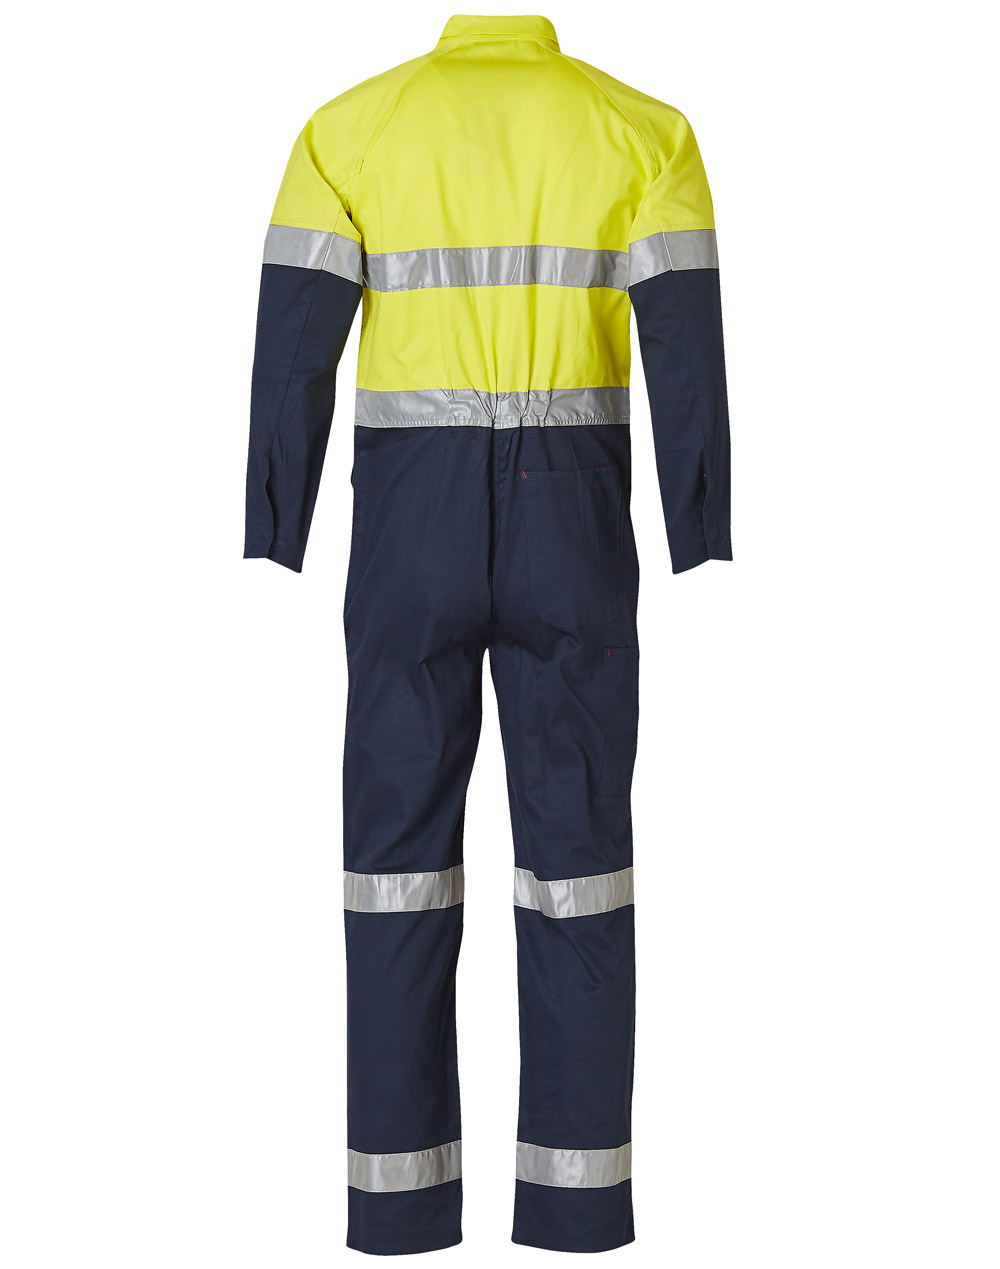 https://s3-ap-southeast-1.amazonaws.com/ws-imgs/WORKWEAR/SW207_YellowNavy_Back.jpg